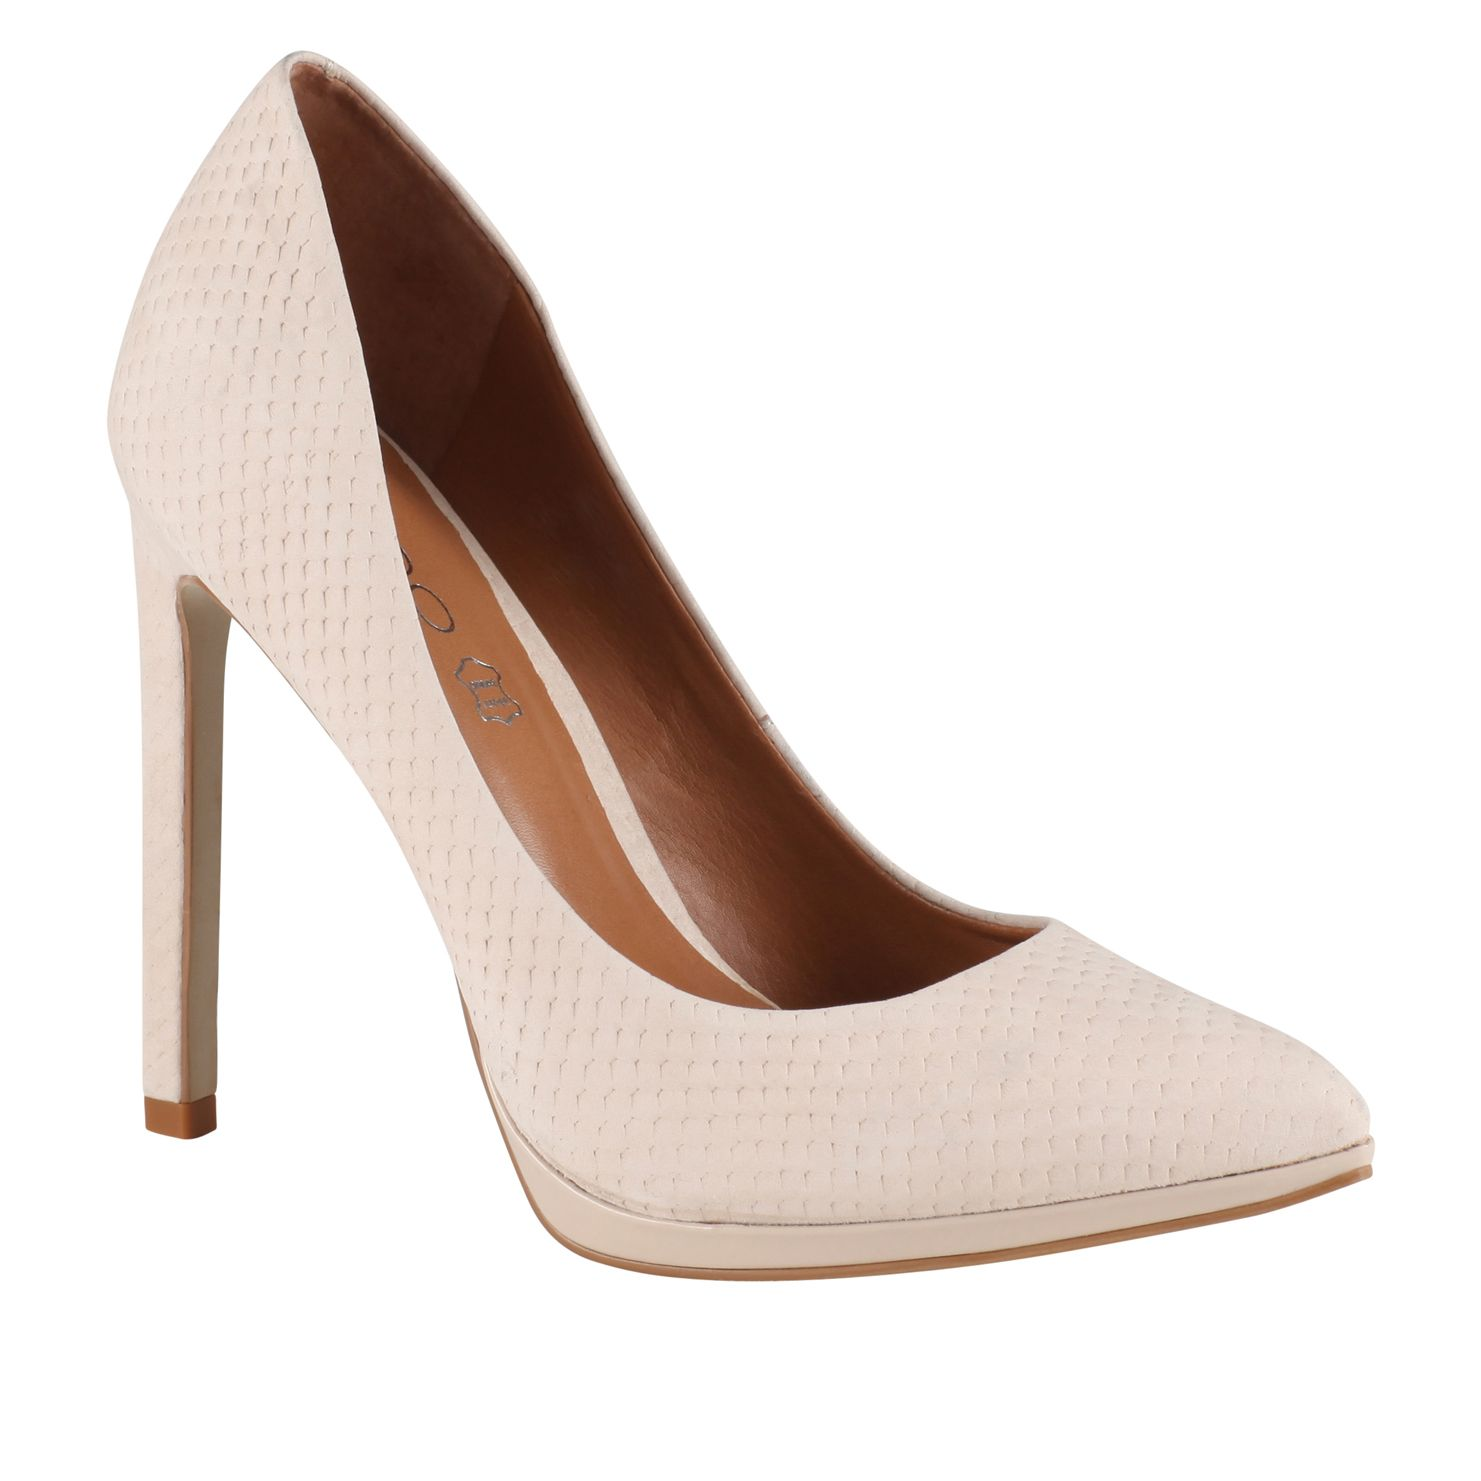 Kristina pointed toe stilleto court shoes